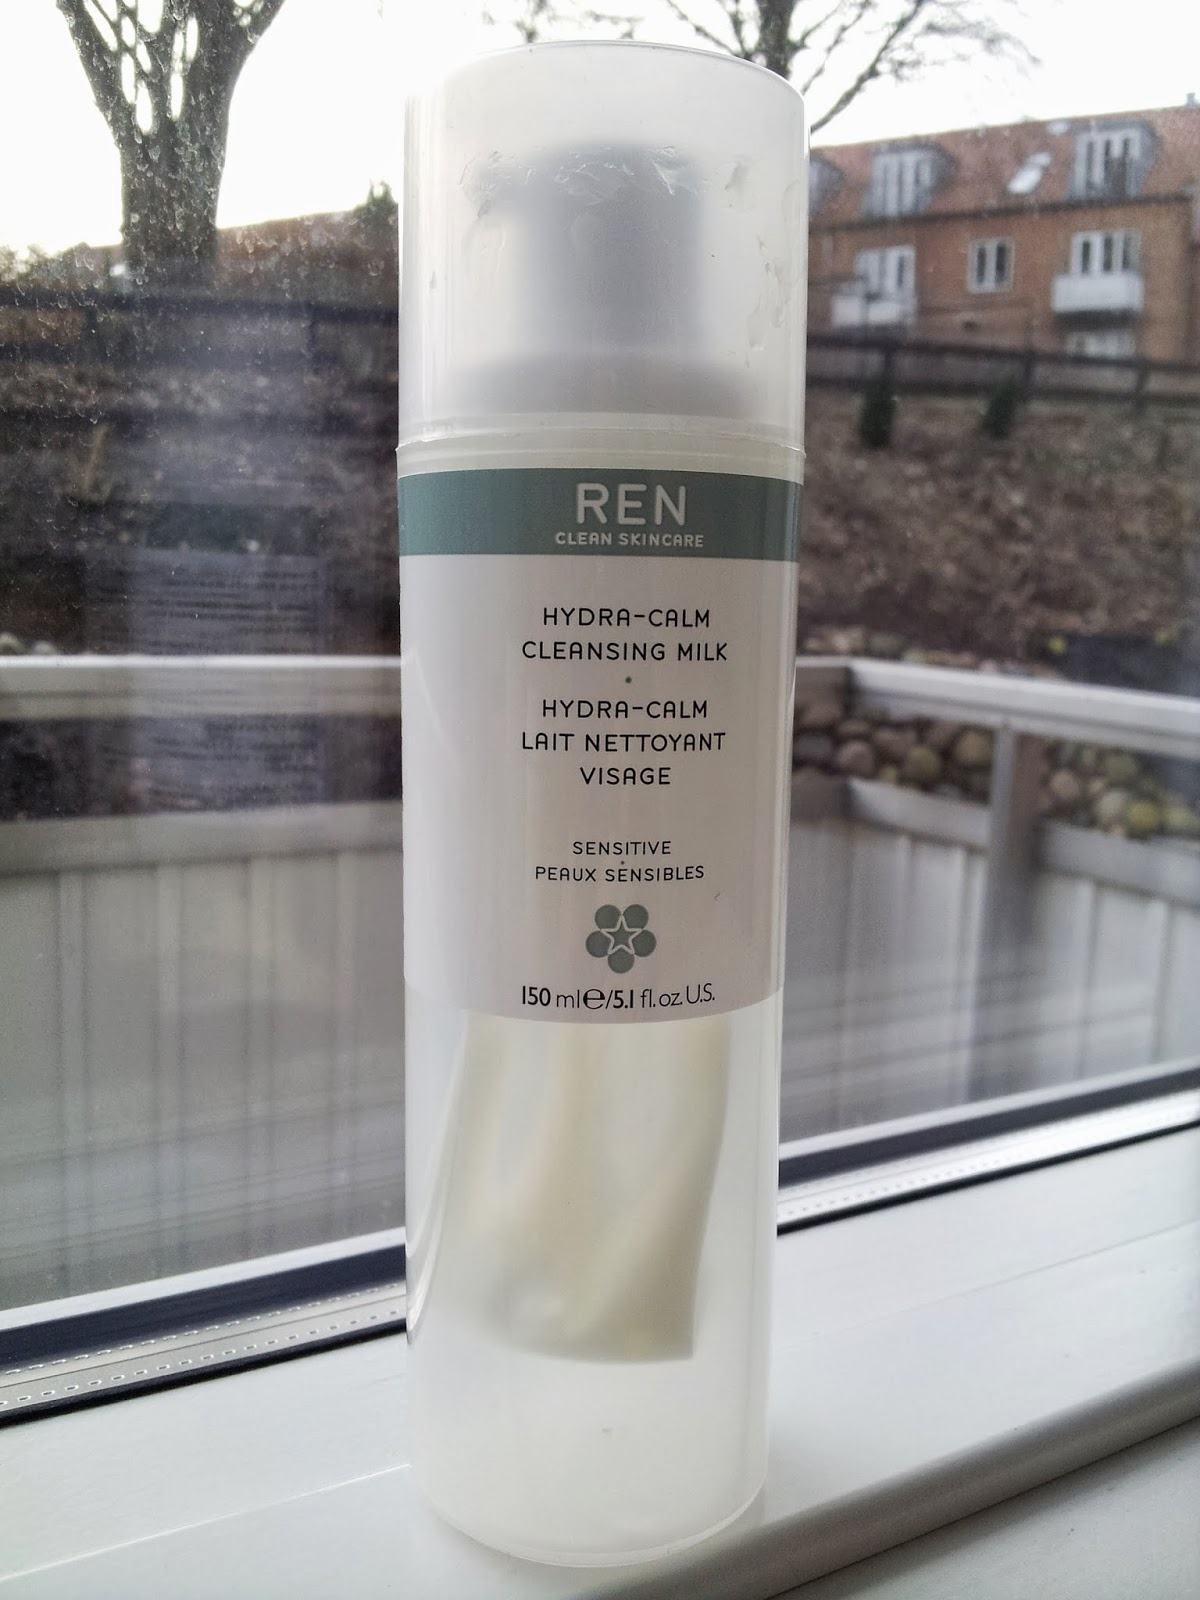 ... in this post, I will be reviewing the REN Hydra-Calm Cleansing Milk